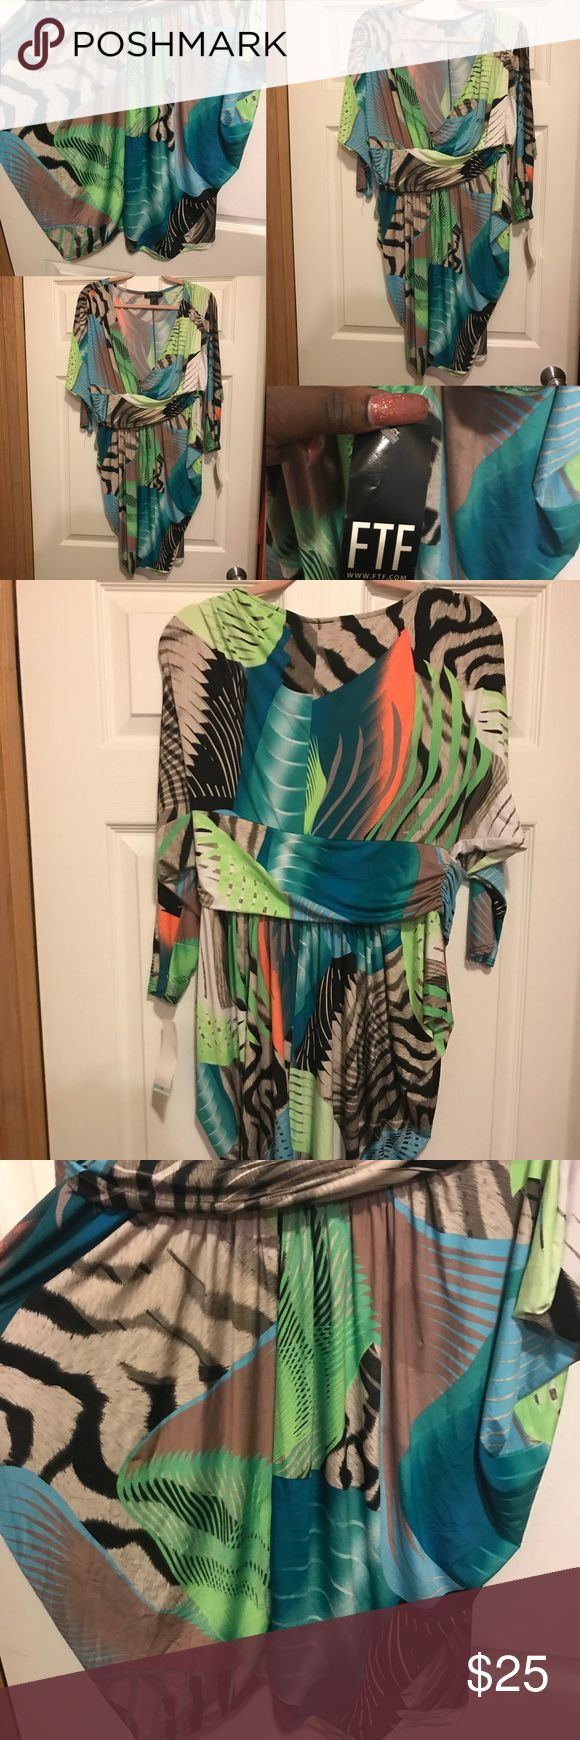 PLUS MULTICOLOR ANIMAL PRINT LONG SLEEVE DRESS PLUS MULTICOLOR ANIMAL PRINT LONG SLEEVE DRESS. SIZE 2X. SEXY MINI DRESS. GOOD MATERIAL. LIGHT WEIGHT WITH GREAT STRETCH. Fashion to Figure Dresses Mini